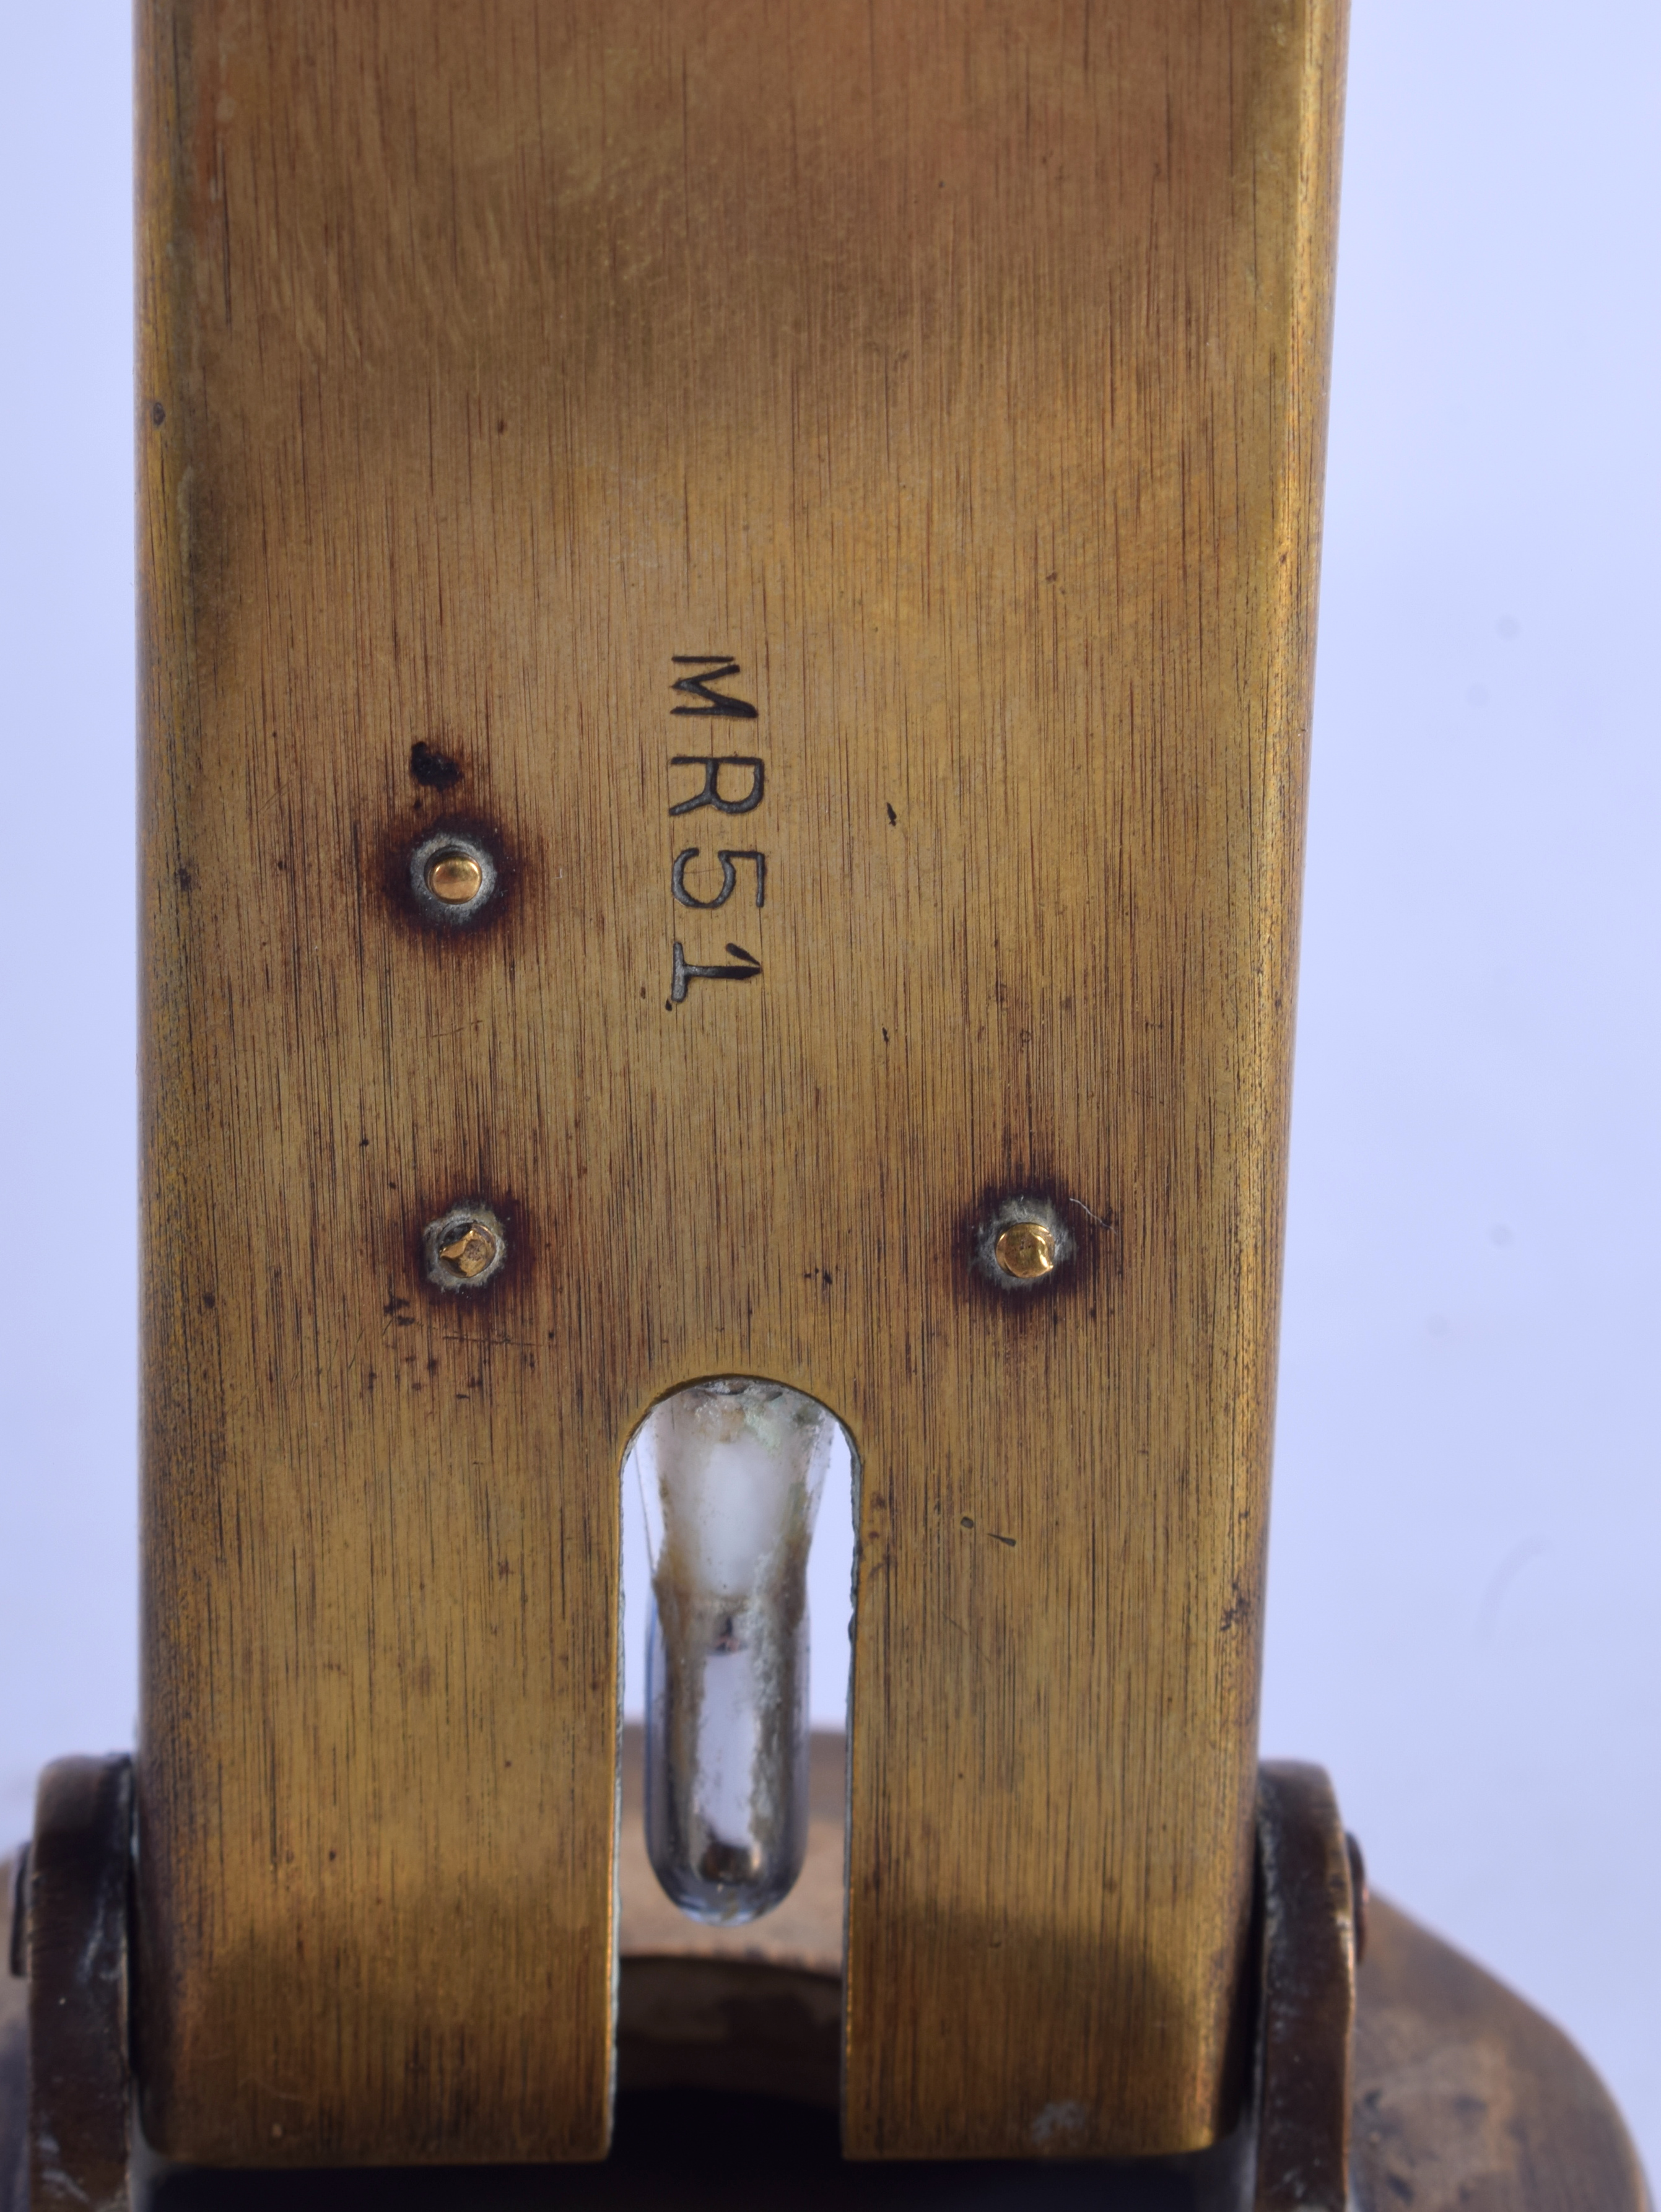 A RARE ANTIQUE BRASS BAKING TEMPERATURE THERMOMETER. 18 cm high. - Image 3 of 4